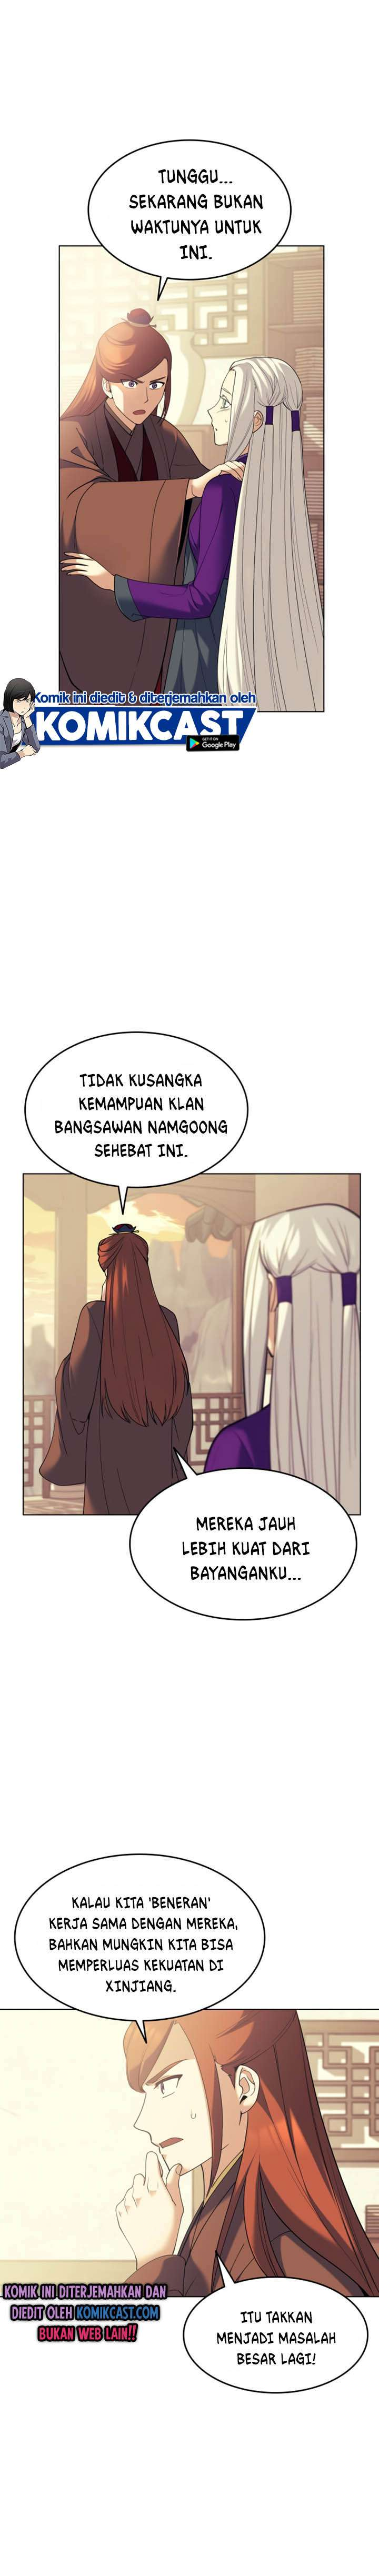 Tale of a Scribe Who Retires to the Countryside Chapter 53 Bahasa Indonesia page 11